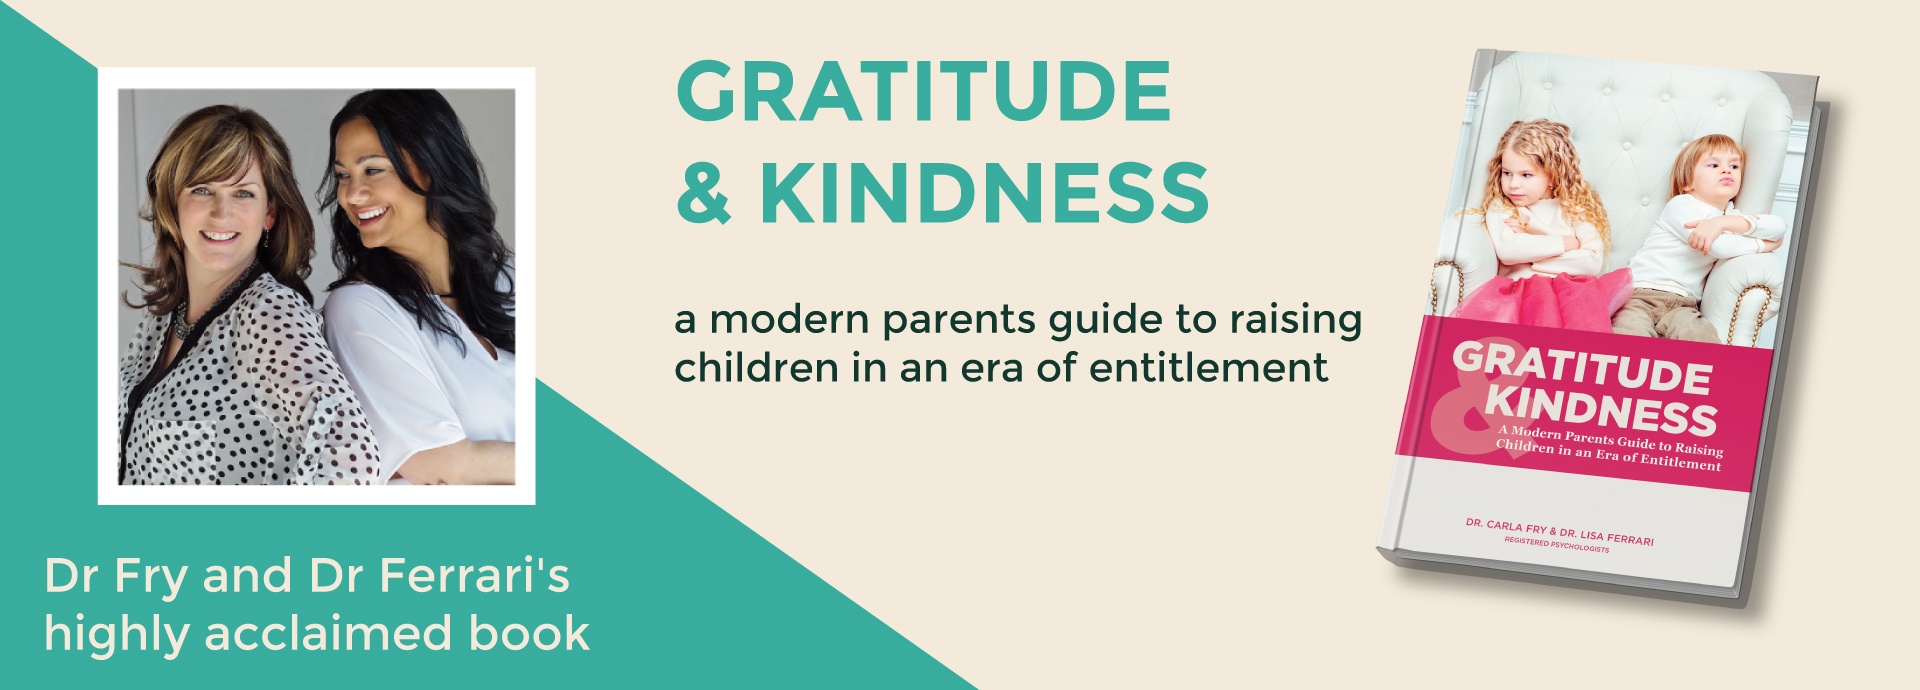 Gratitude & Kindness book